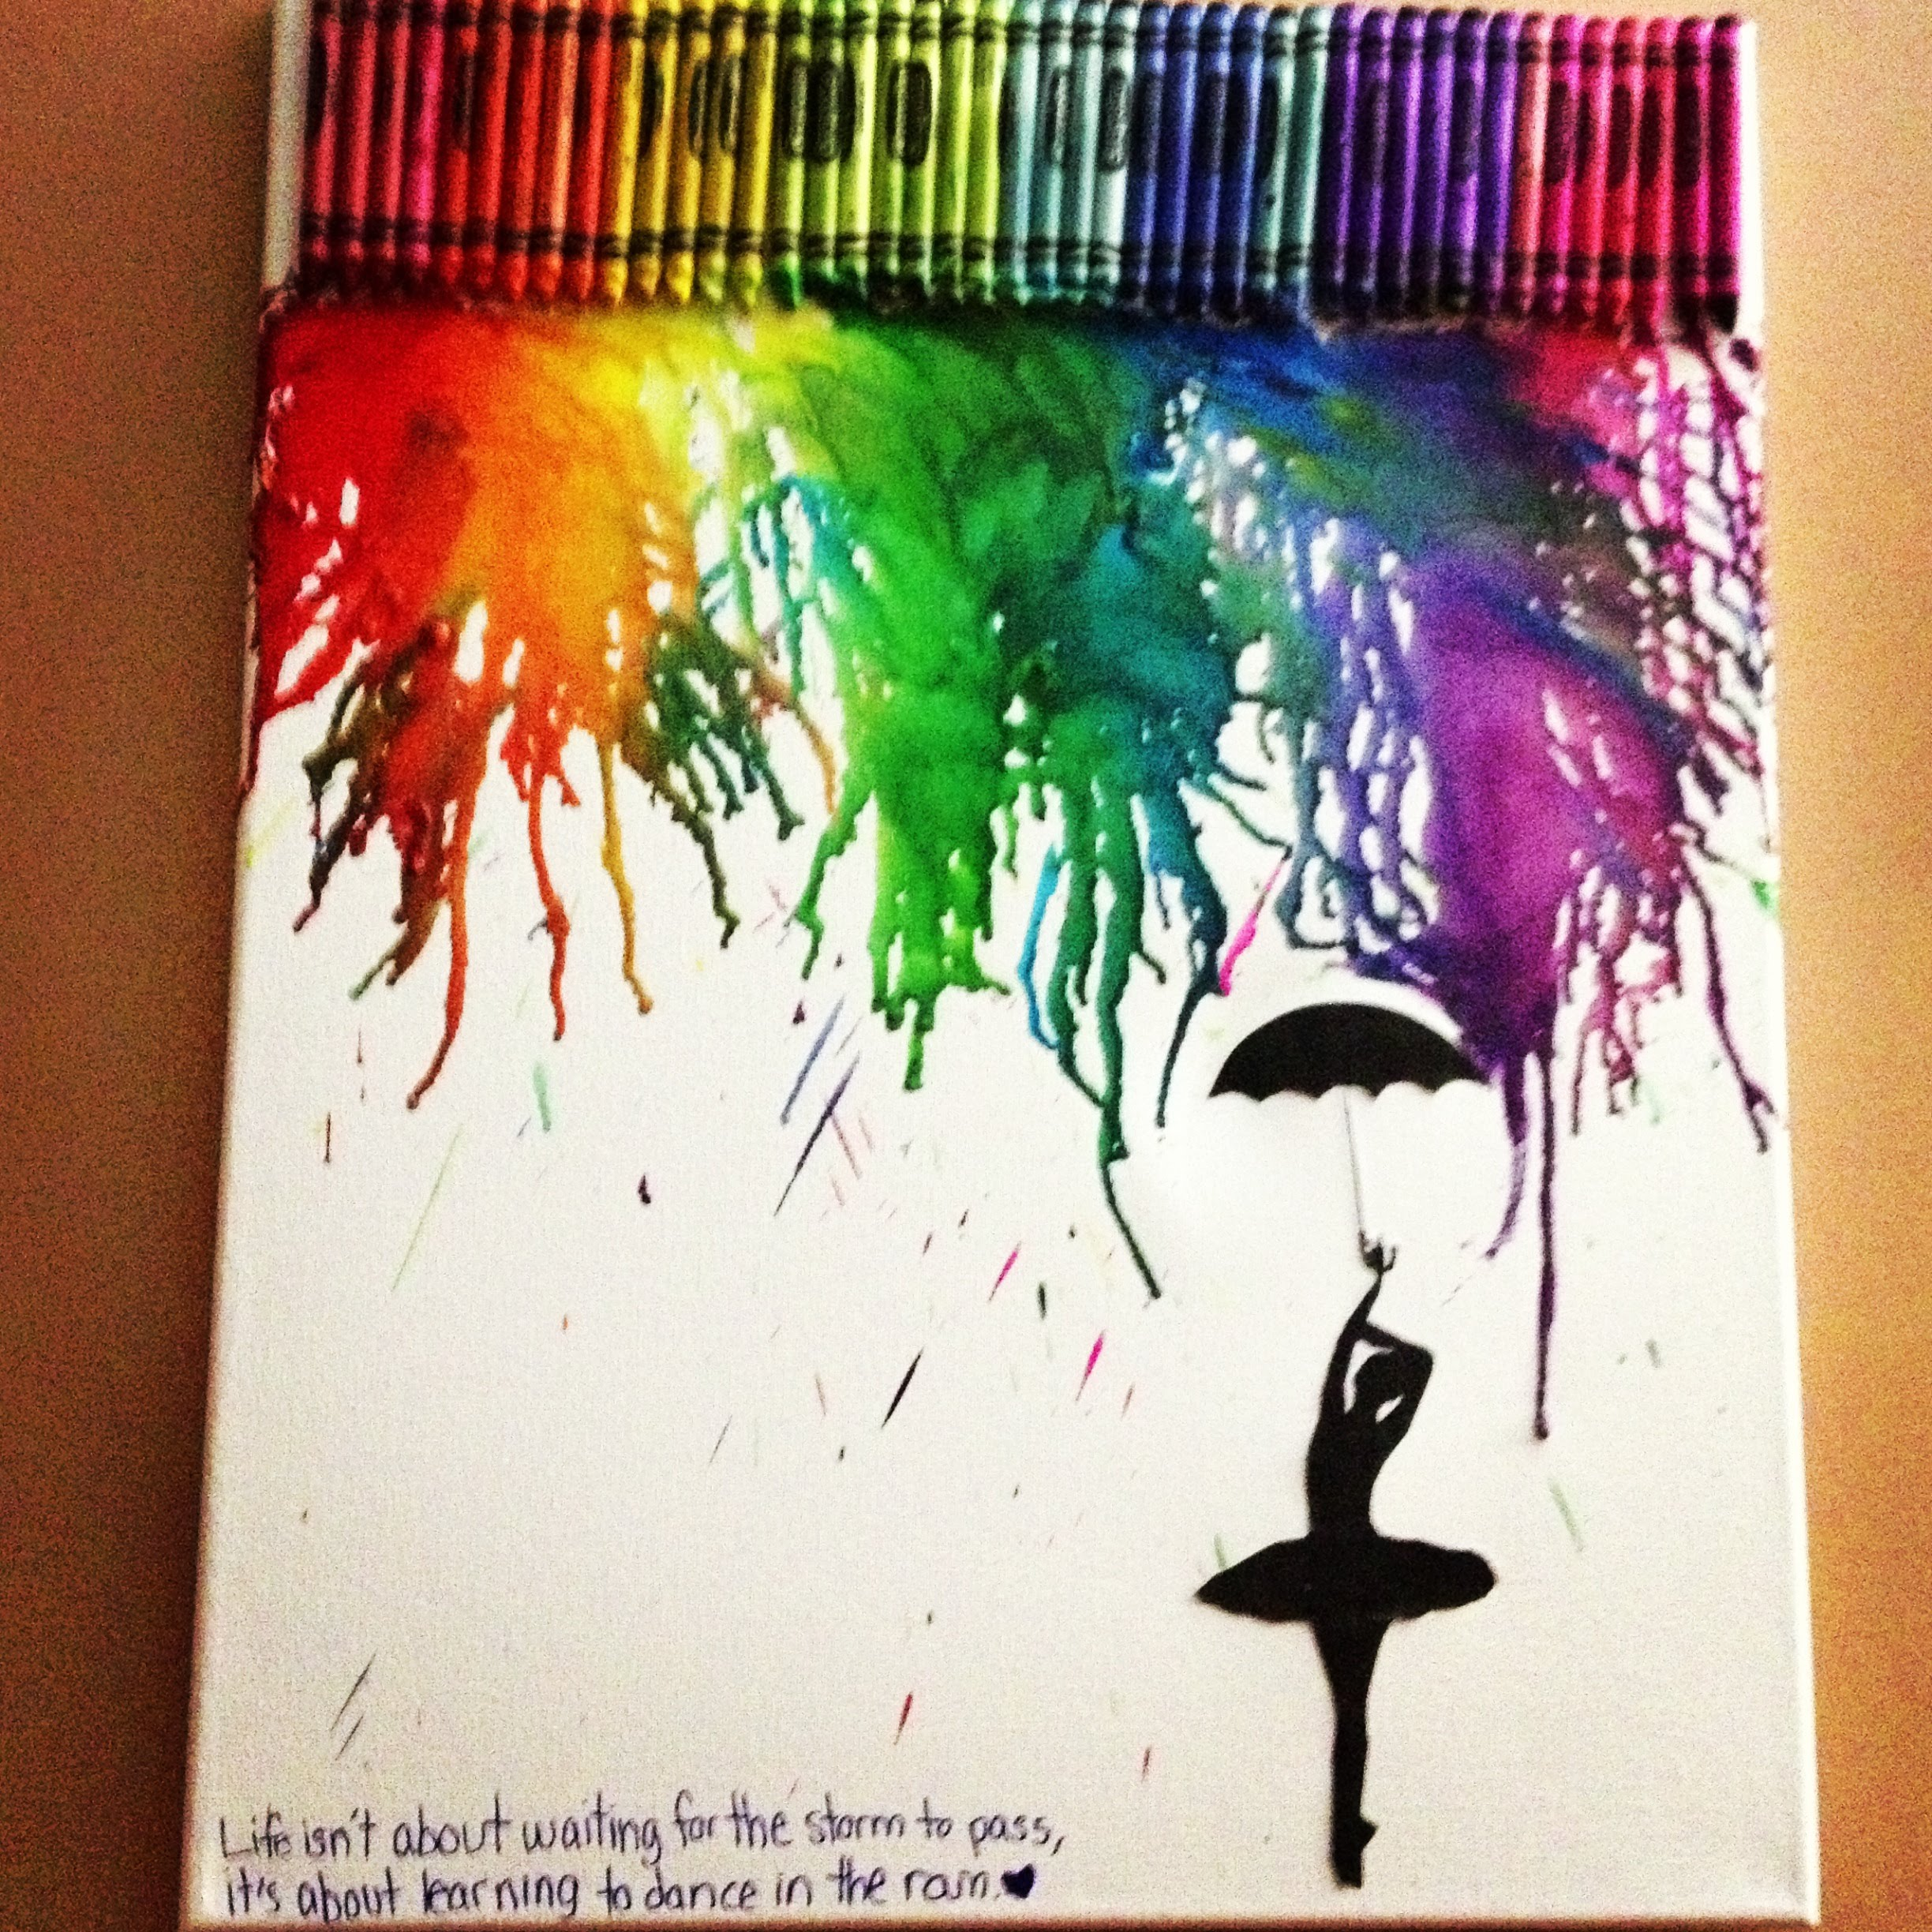 melted crayon art with silhouette